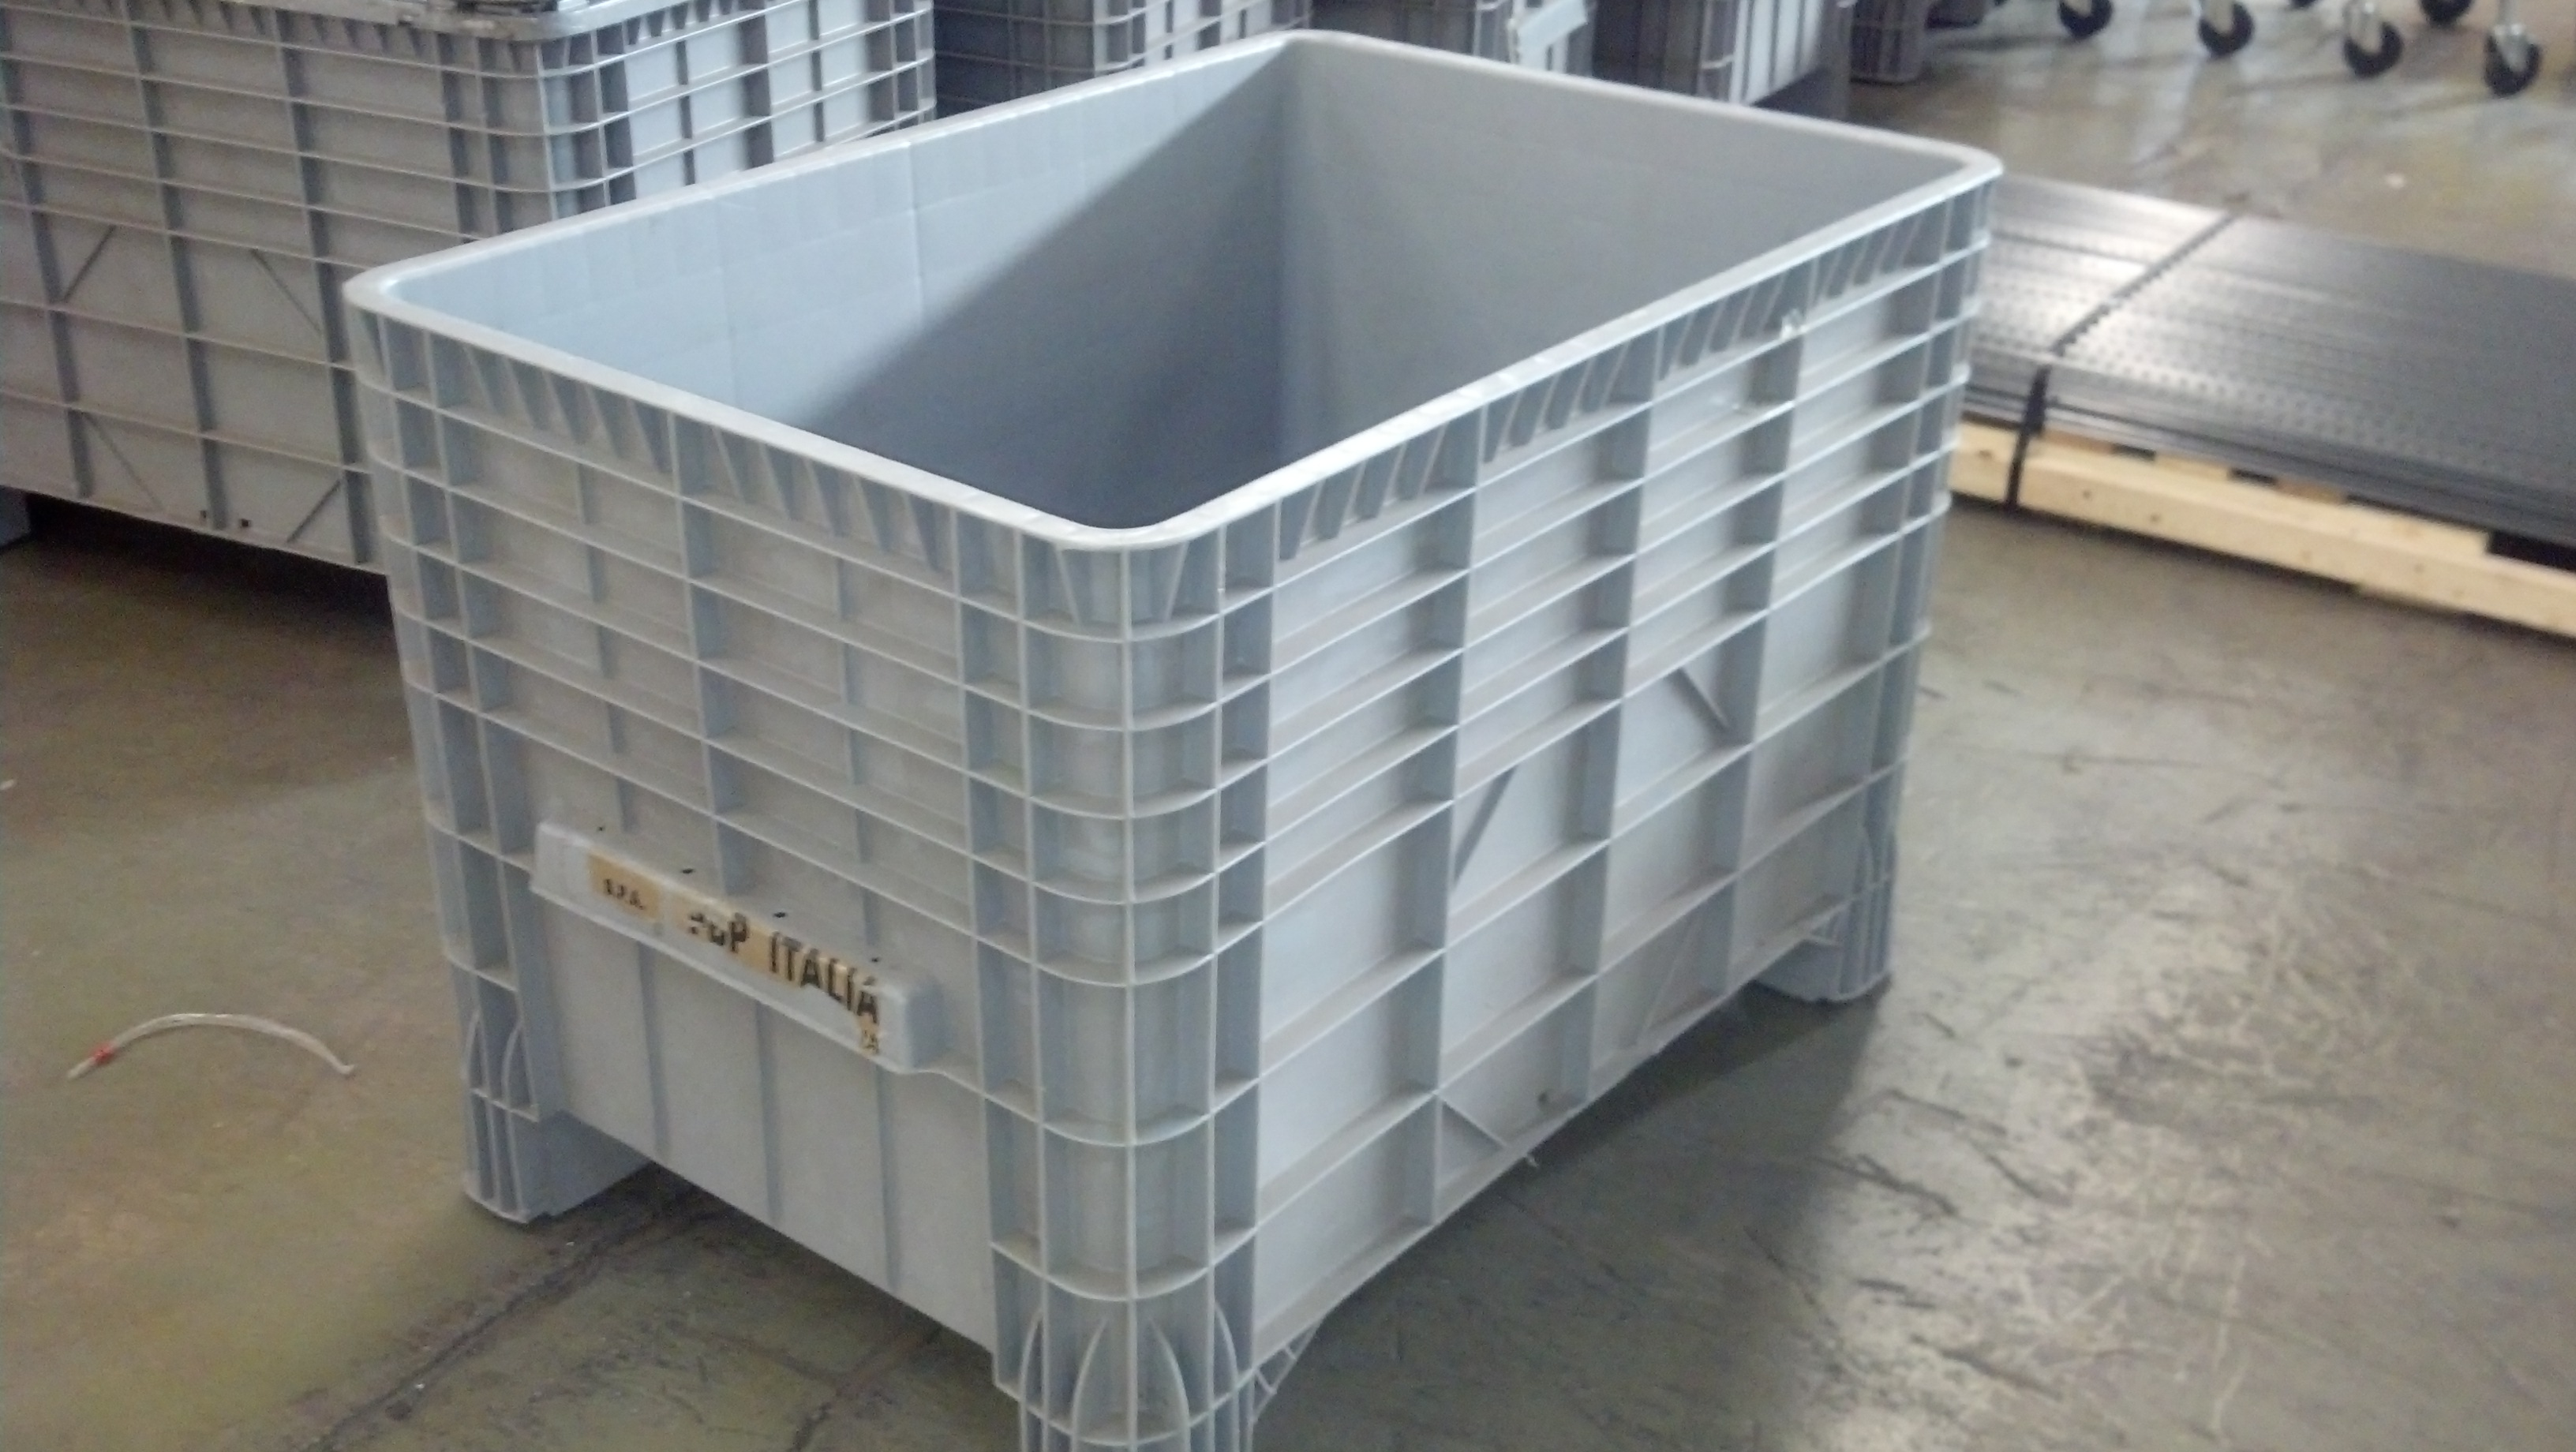 New & Used Bins, Totes, Finger Lid Totes, Wire Baskets, & Material ...